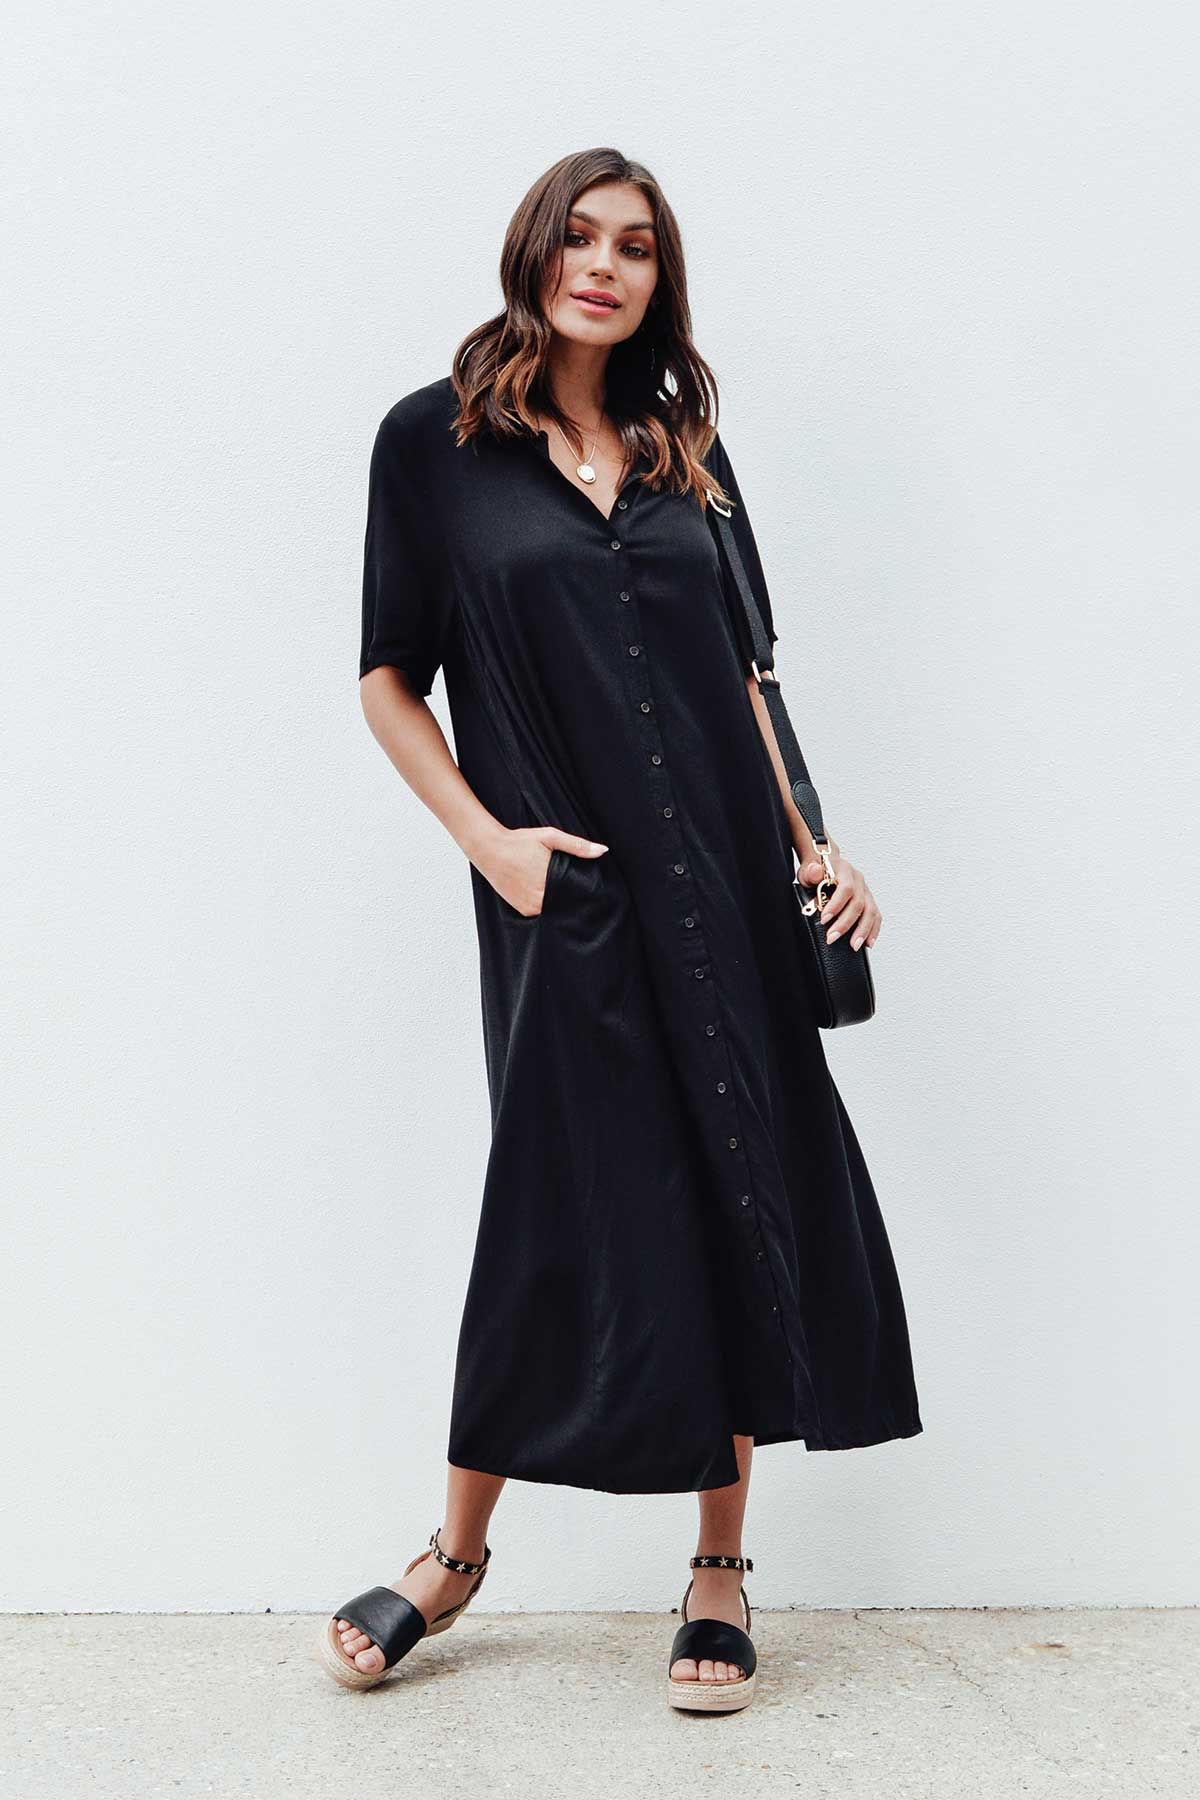 Chloe Black Everyday Maxi Dress